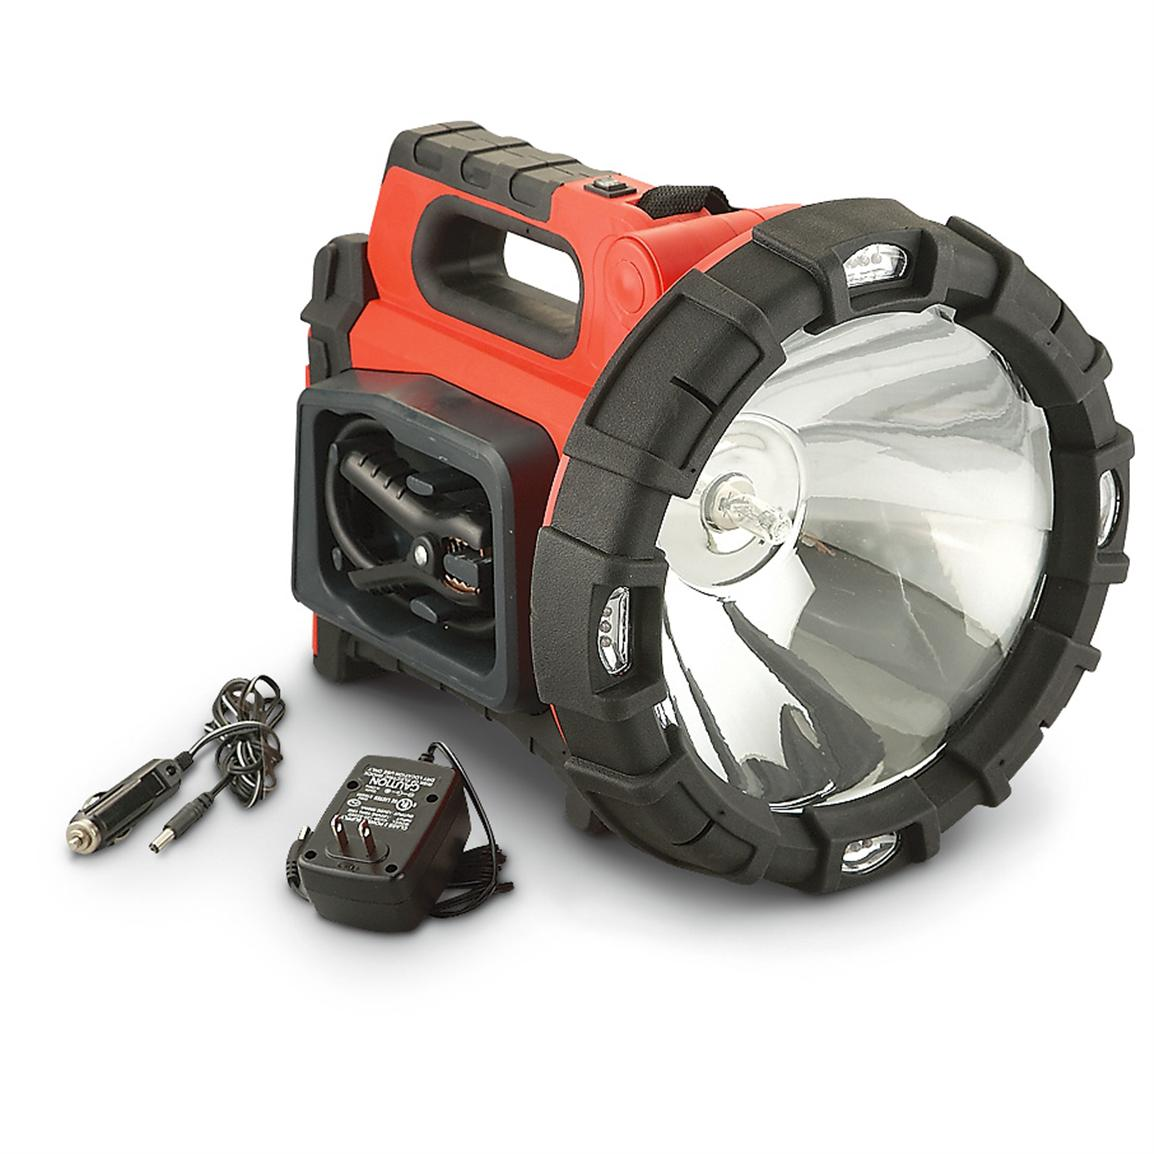 20-million Candlepower Search Light with 12-LED Area Light and Vehicle Jumpstarter Combo